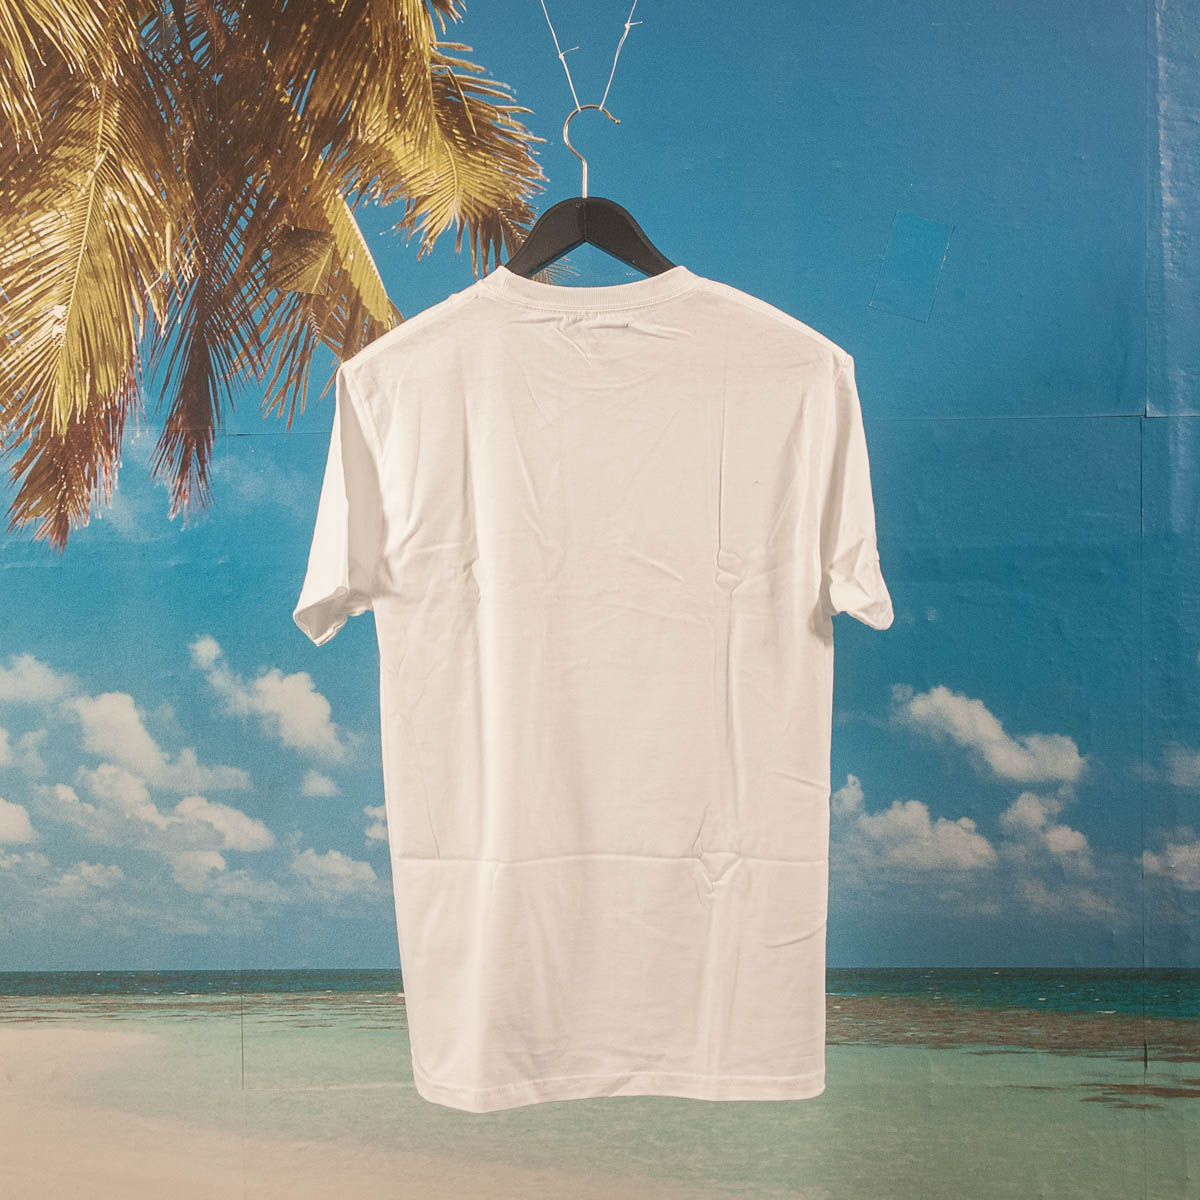 Quasi Skateboards - Liquid T-Shirt - White